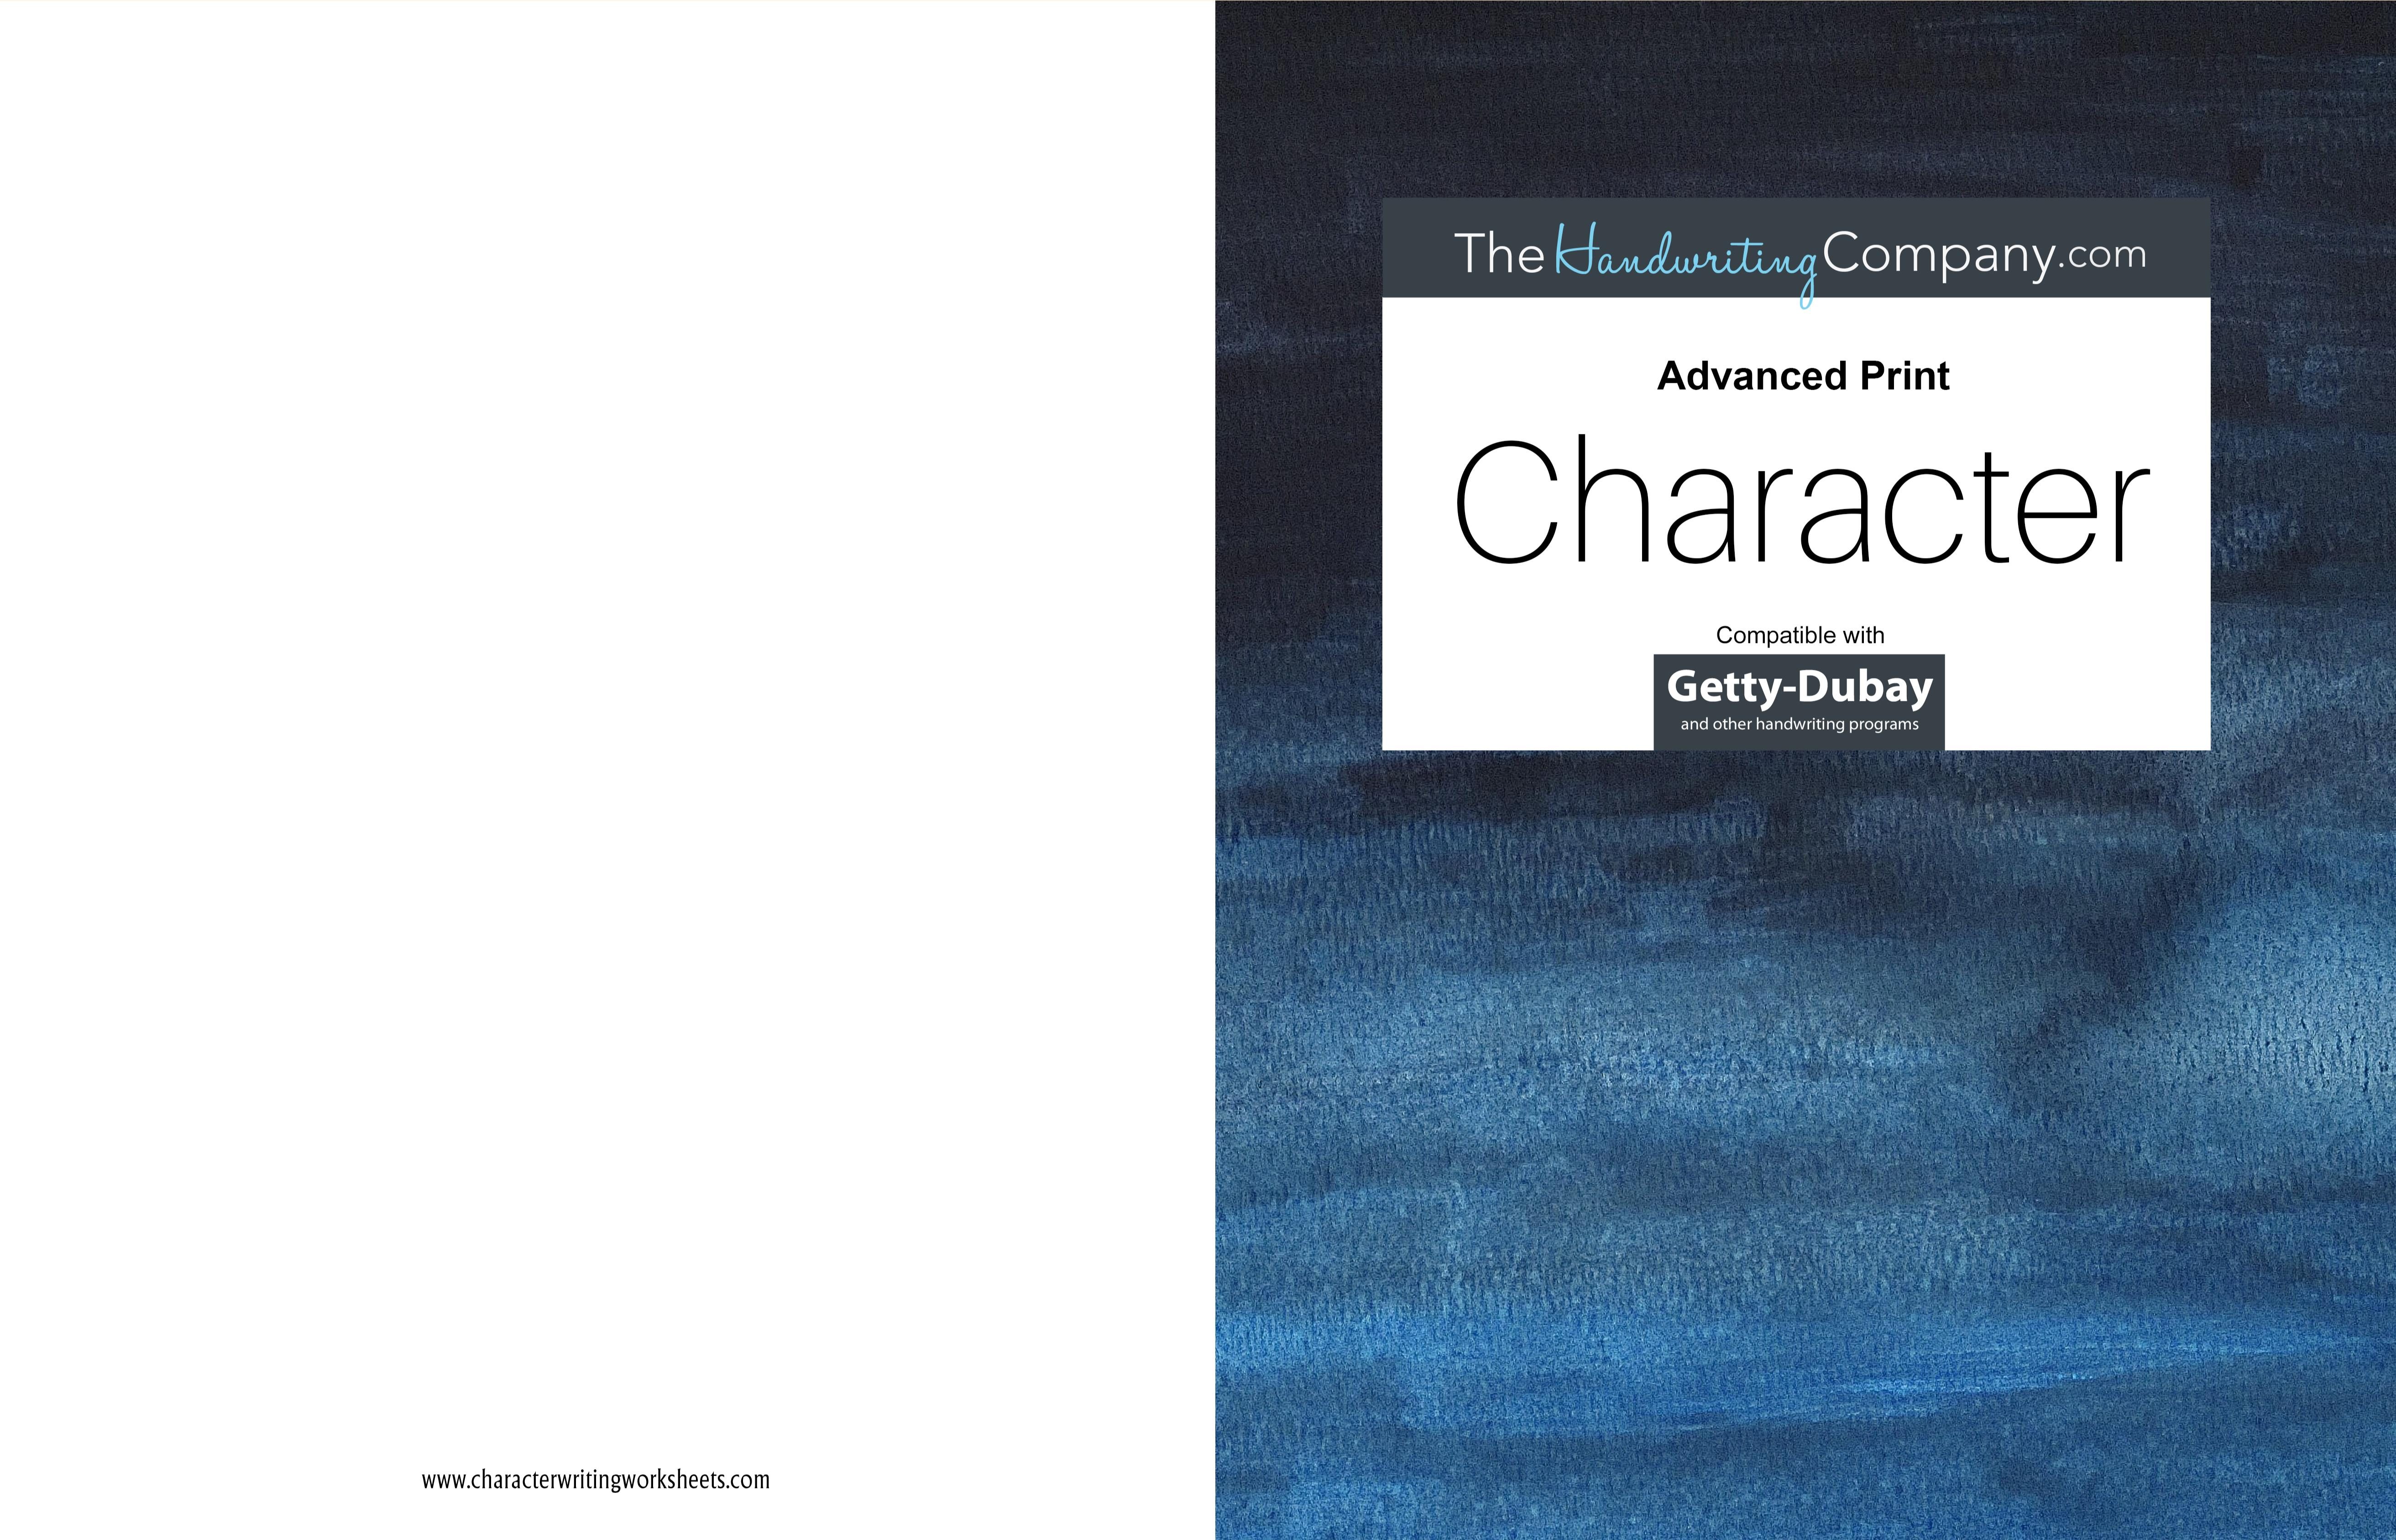 Character Getty-Dubay - Advanced Print cover image